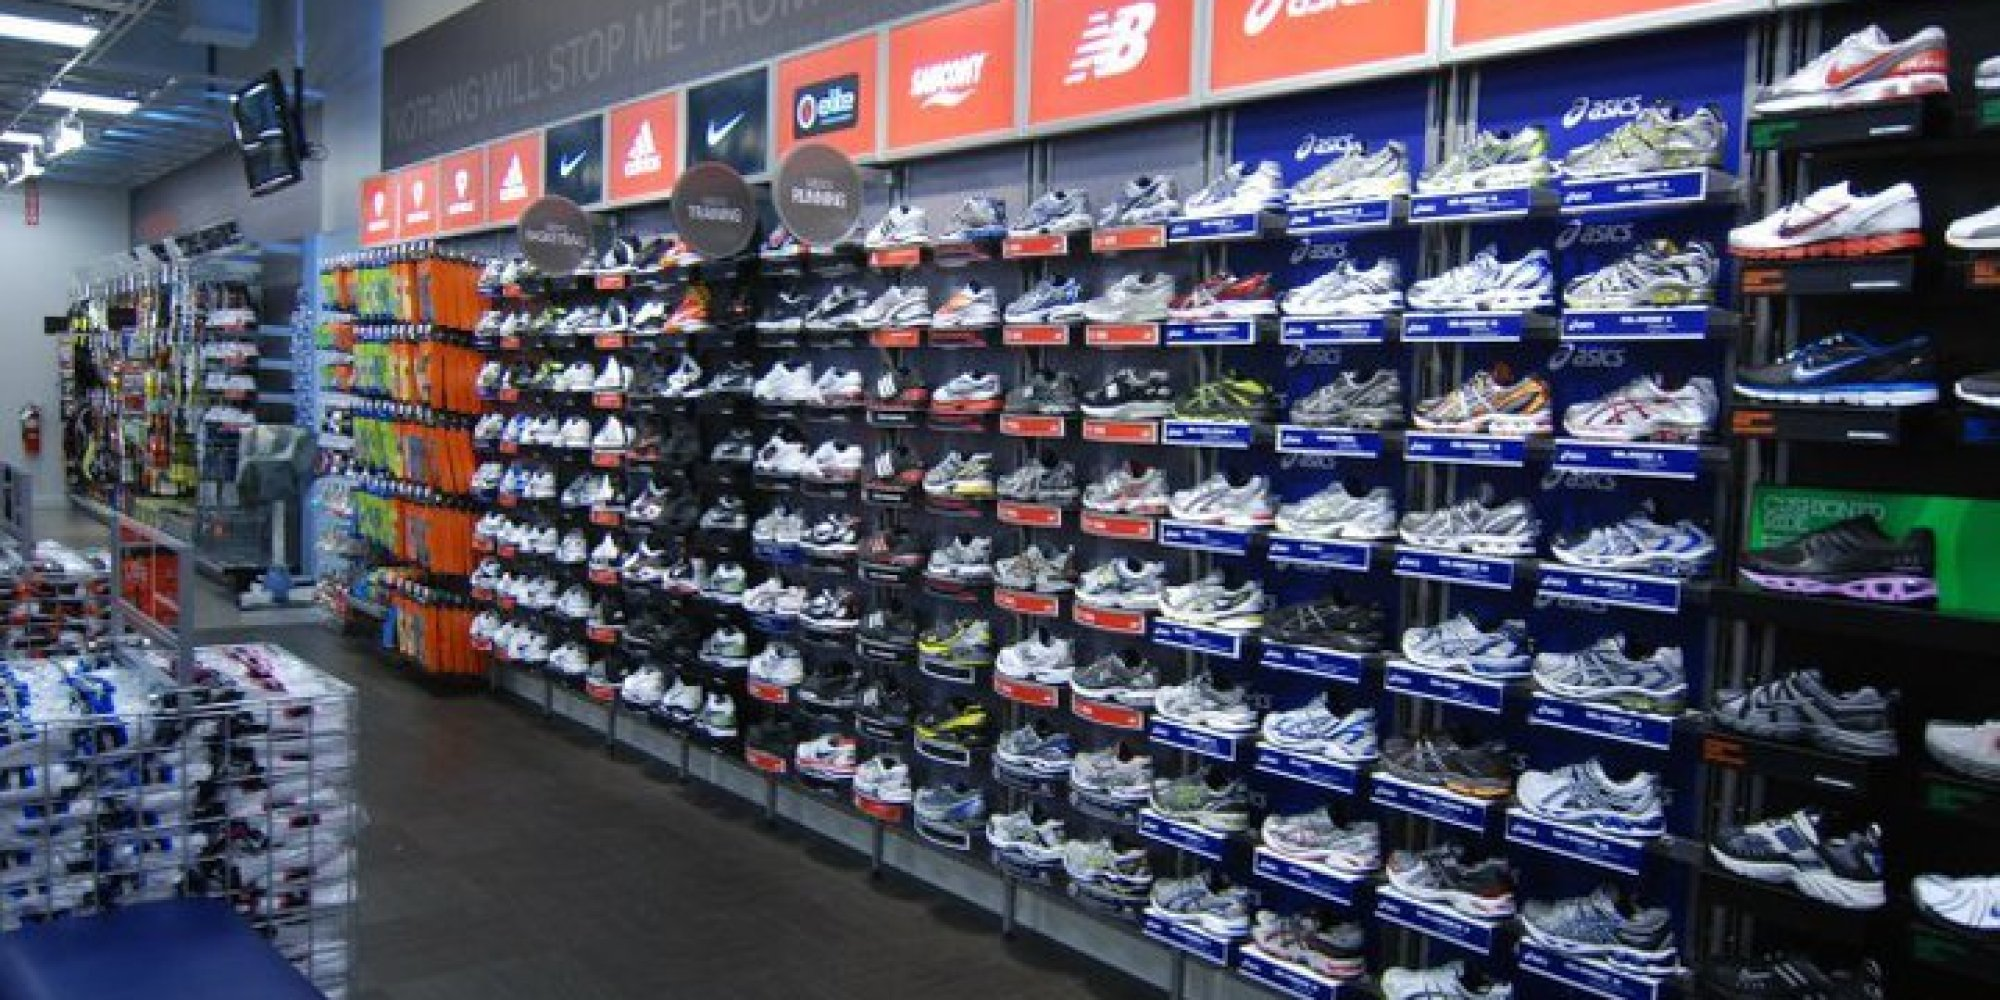 Inside sports authority store